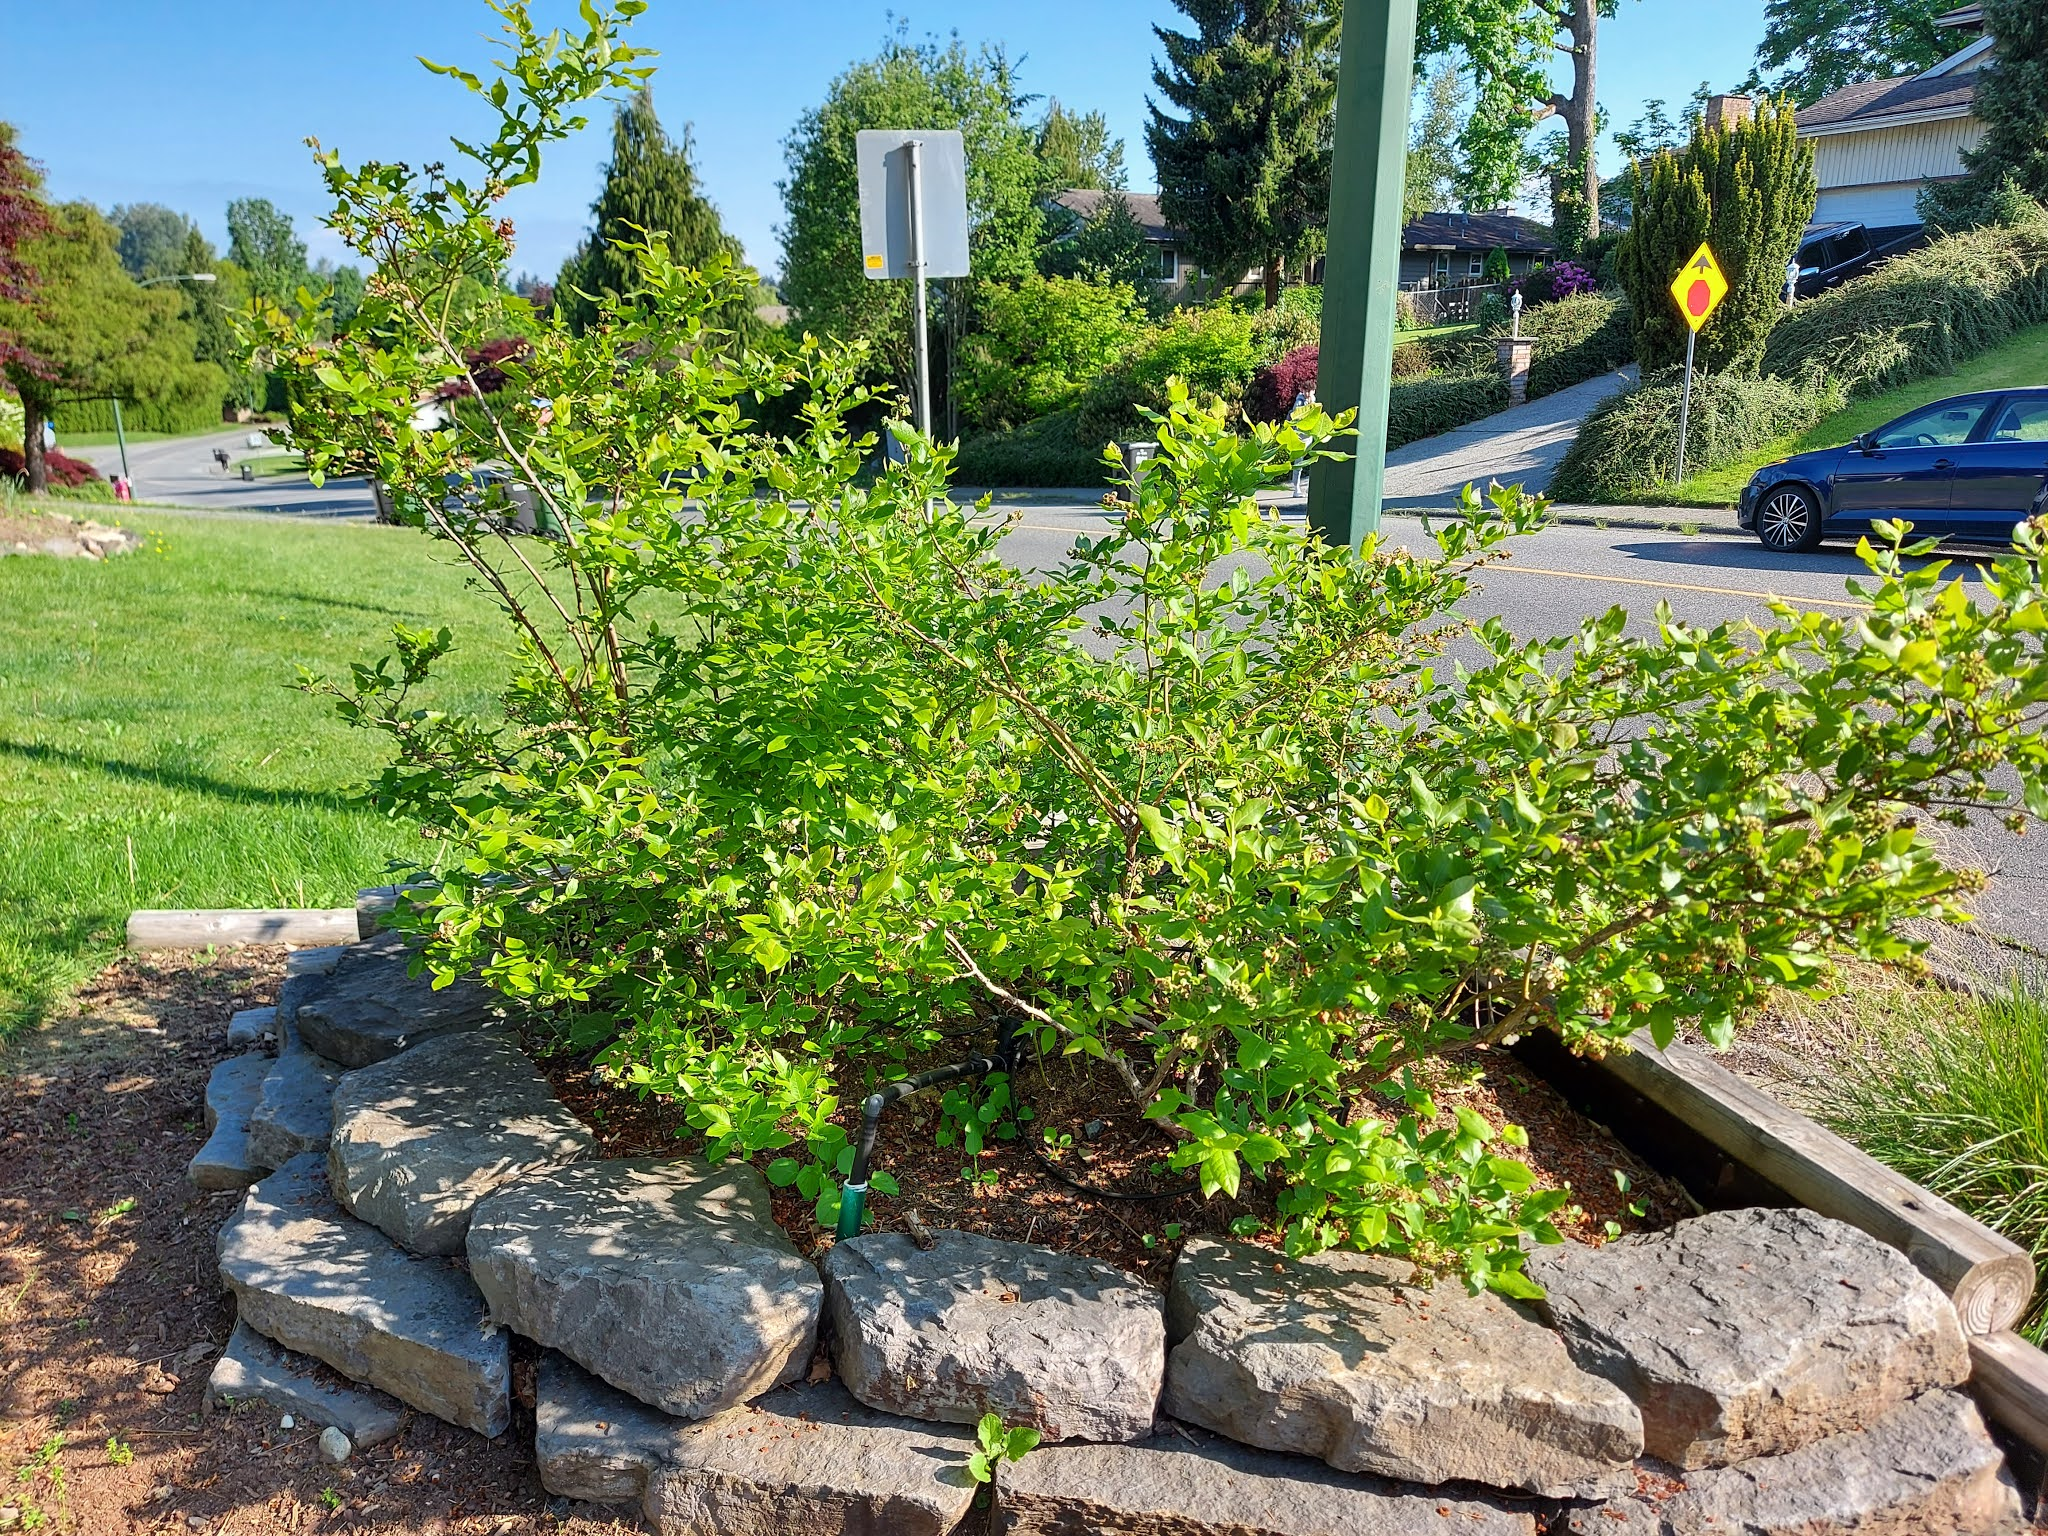 Blueberry to plant in front yard idea